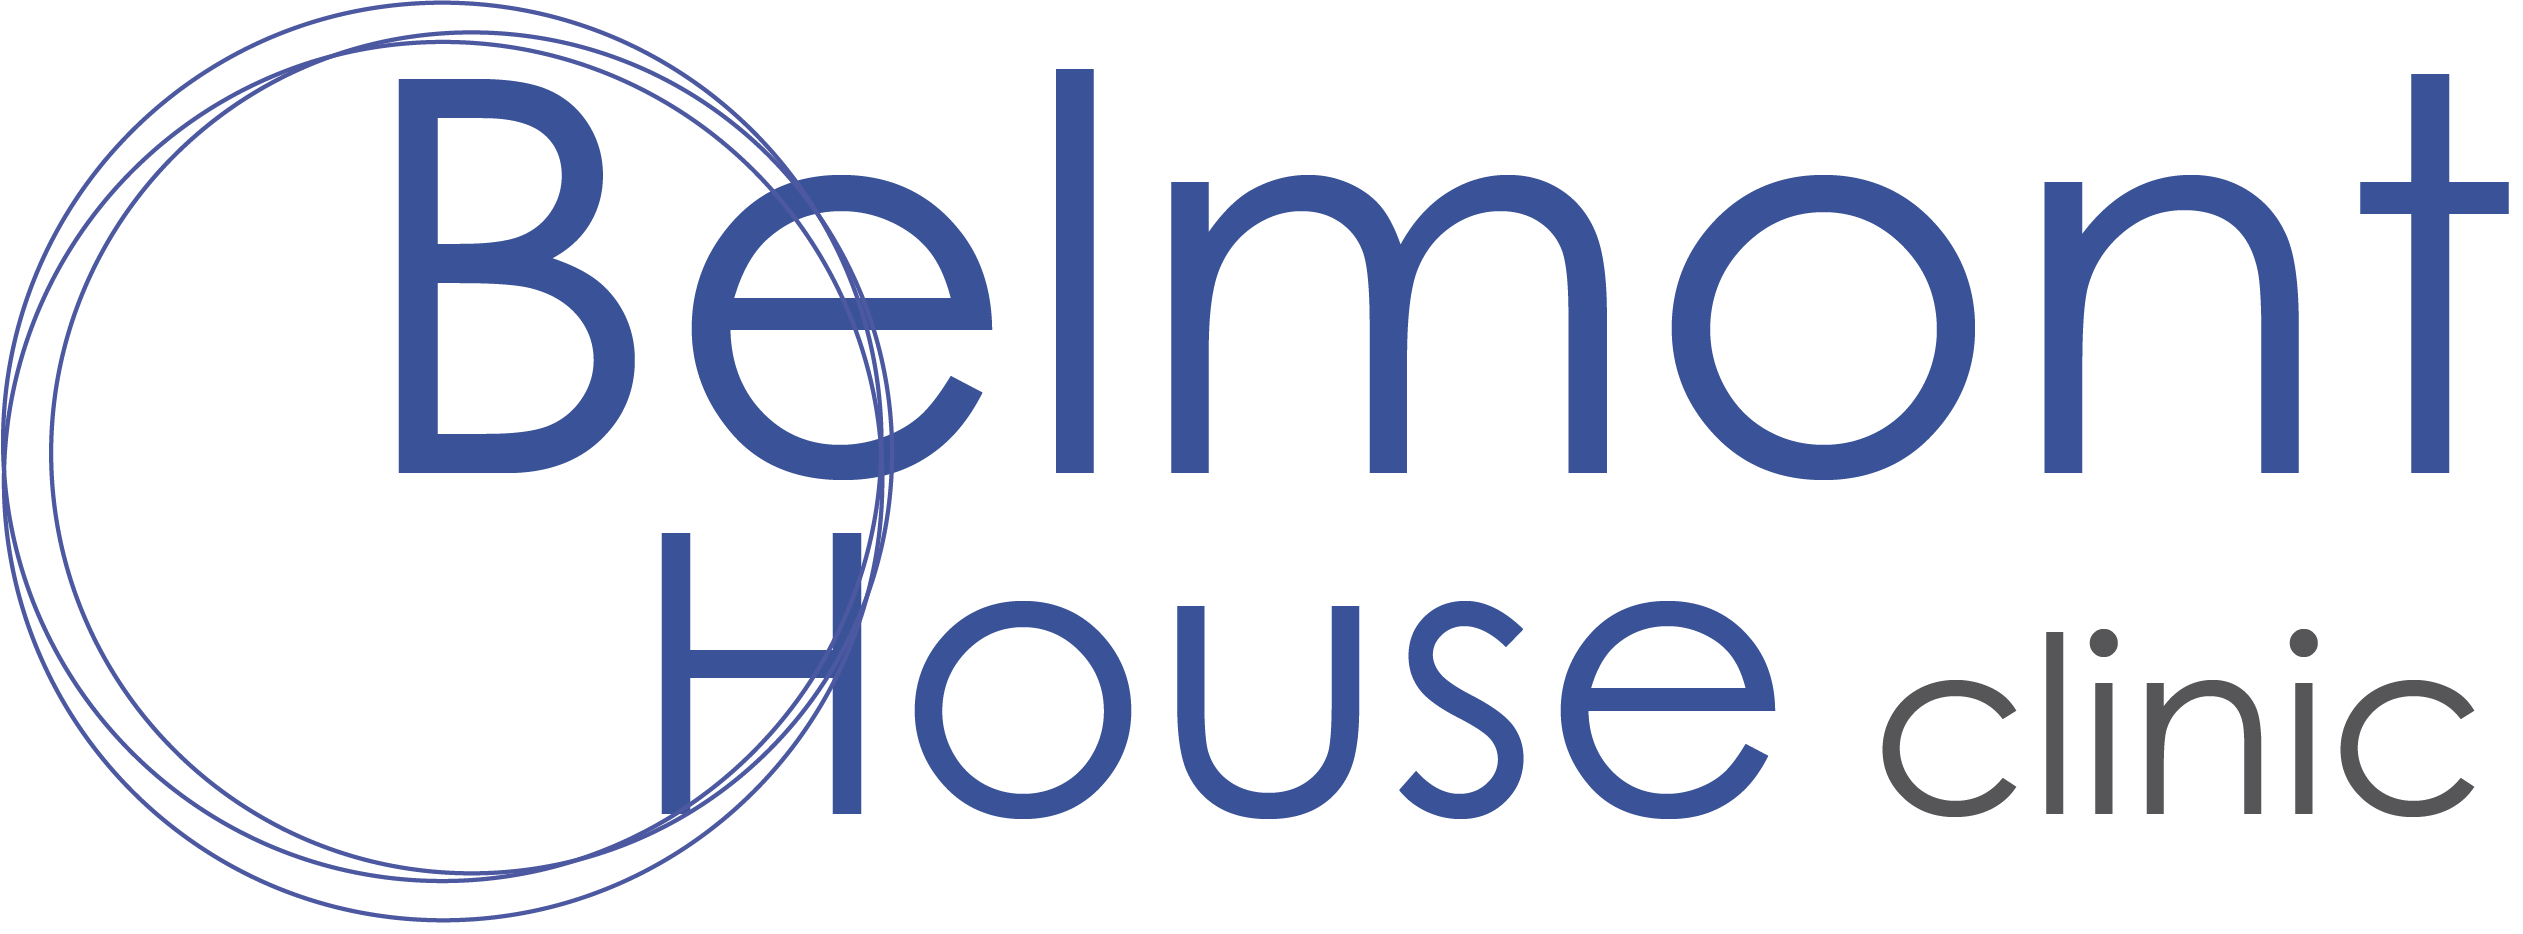 Belmont House Clinic